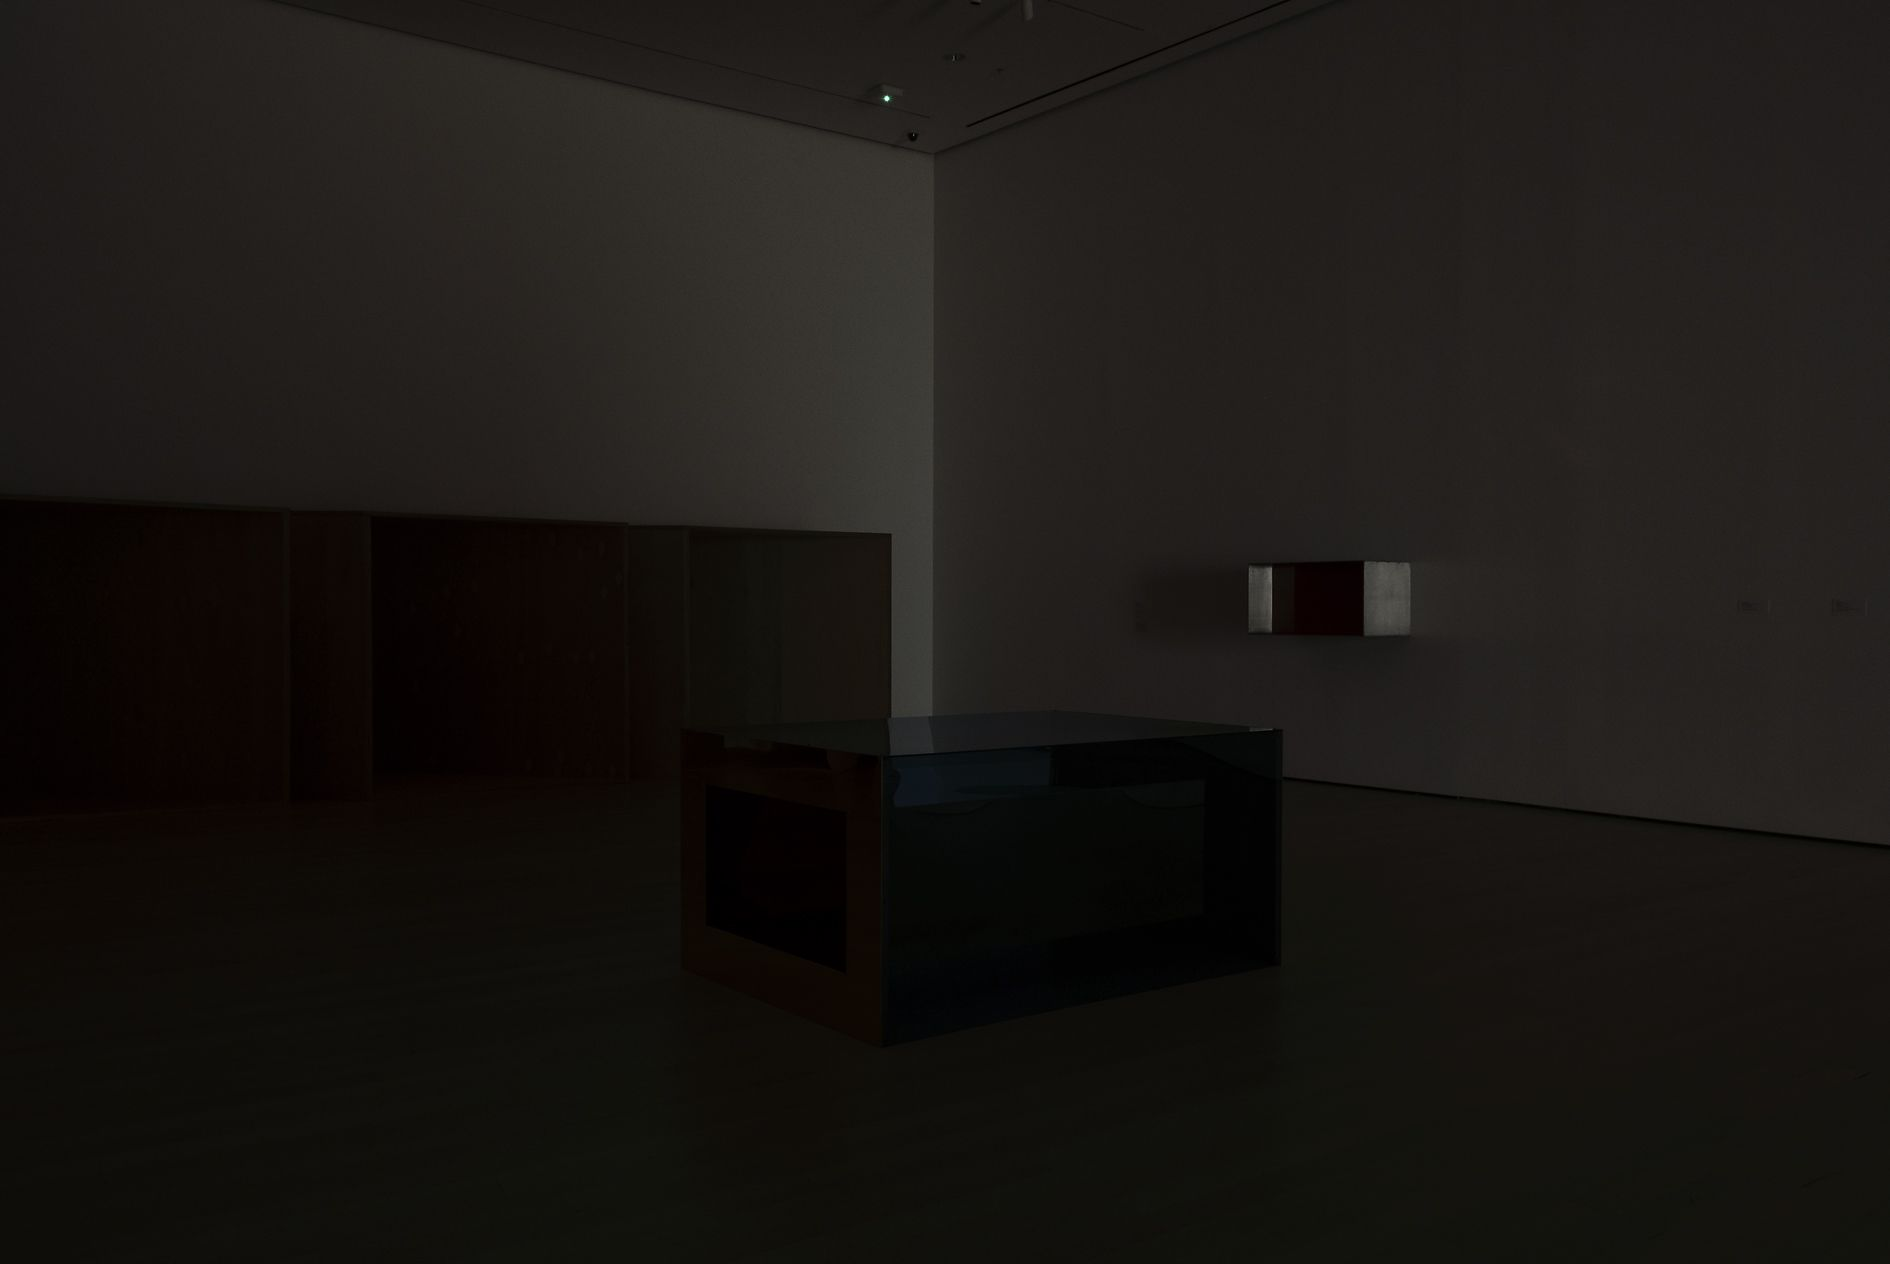 Louise Lawler – LIGHTS OFF, AFTER HOURS, IN THE DARK – Berlin